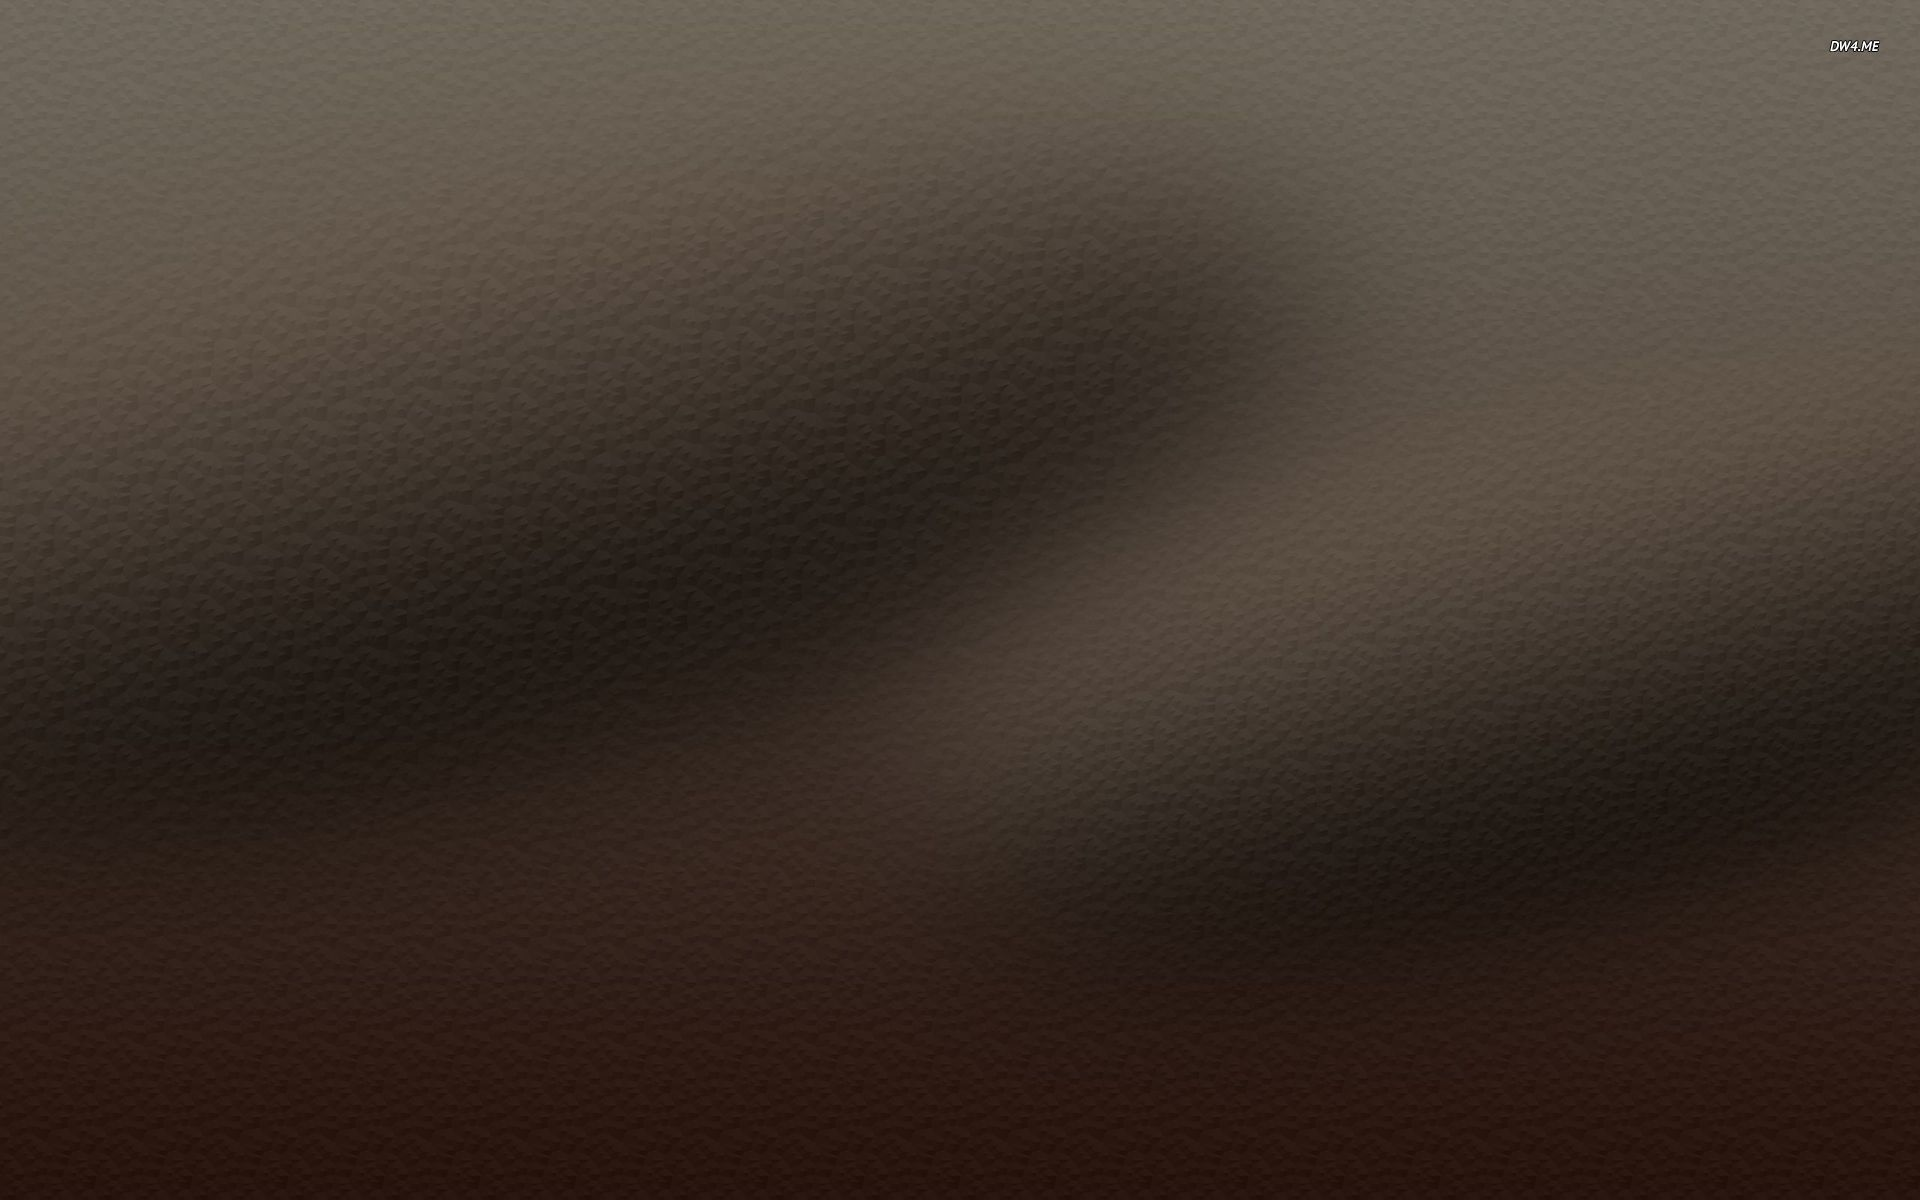 Brown leather wallpaper   Minimalistic wallpapers   169 1920x1200